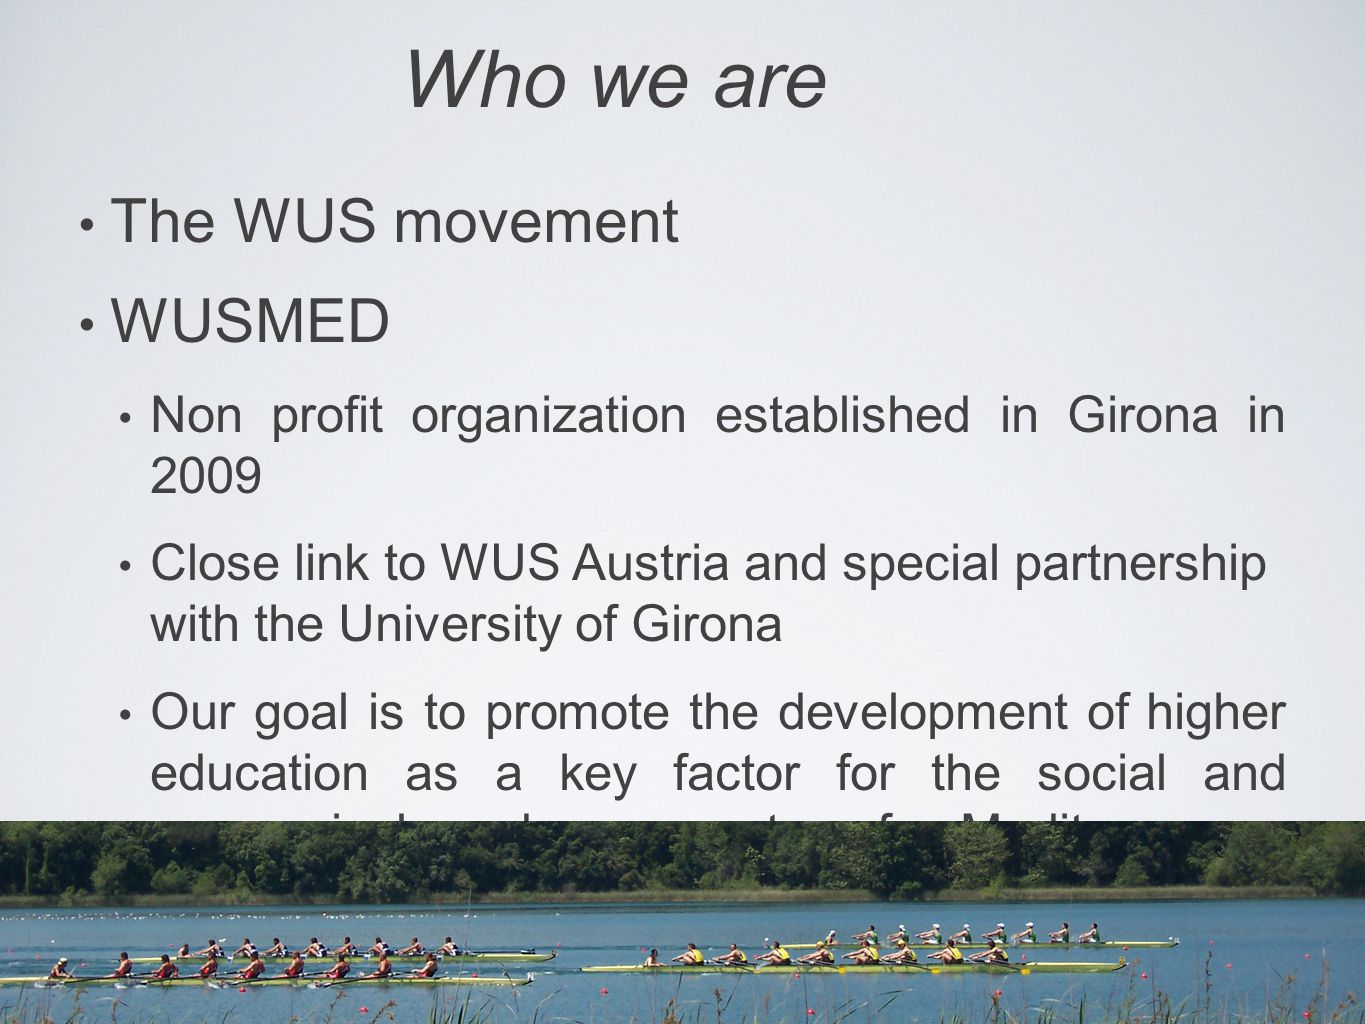 Who we are The WUS movement WUSMED Non profit organization established in Girona in 2009 Close link to WUS Austria and special partnership with the University of Girona Our goal is to promote the development of higher education as a key factor for the social and economical advancement of Mediterranean societies